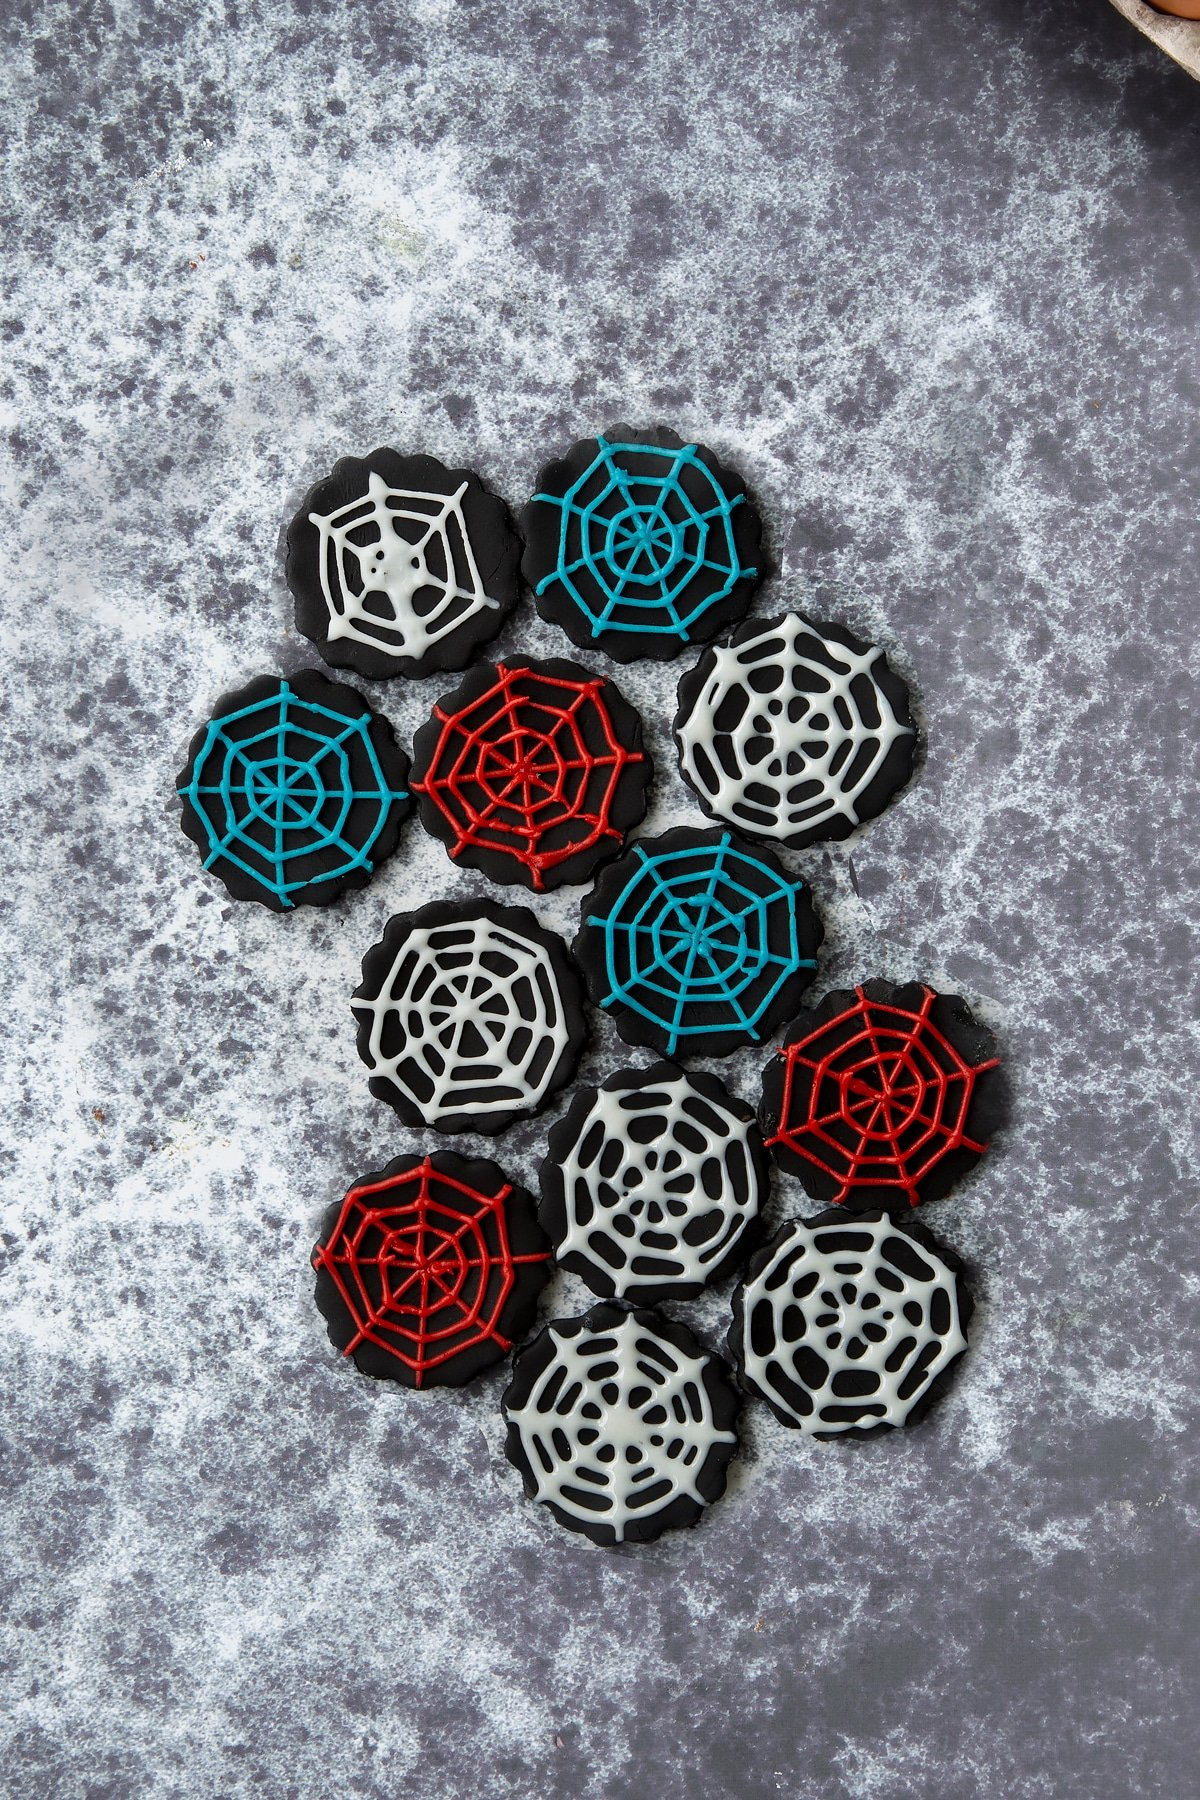 Discs of black sugar paste on a dark background. The discs have been decorated with spider webs using red, blue and white icing pens.